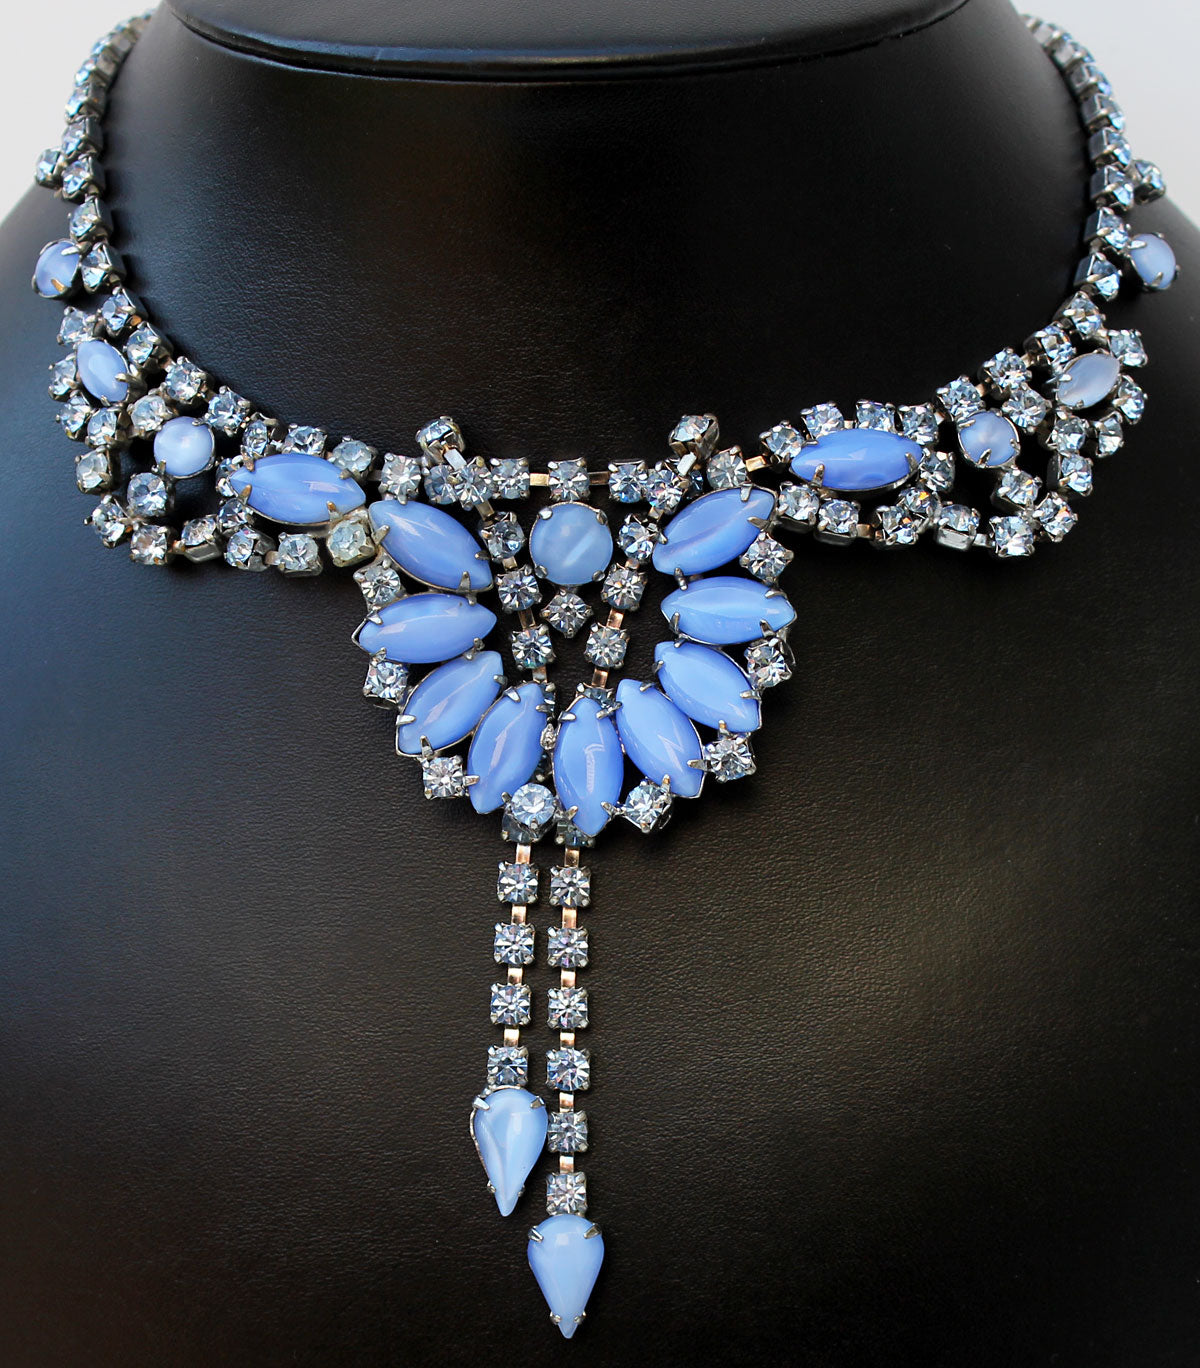 1950's Blue Rhinestone Necklace and Earrings